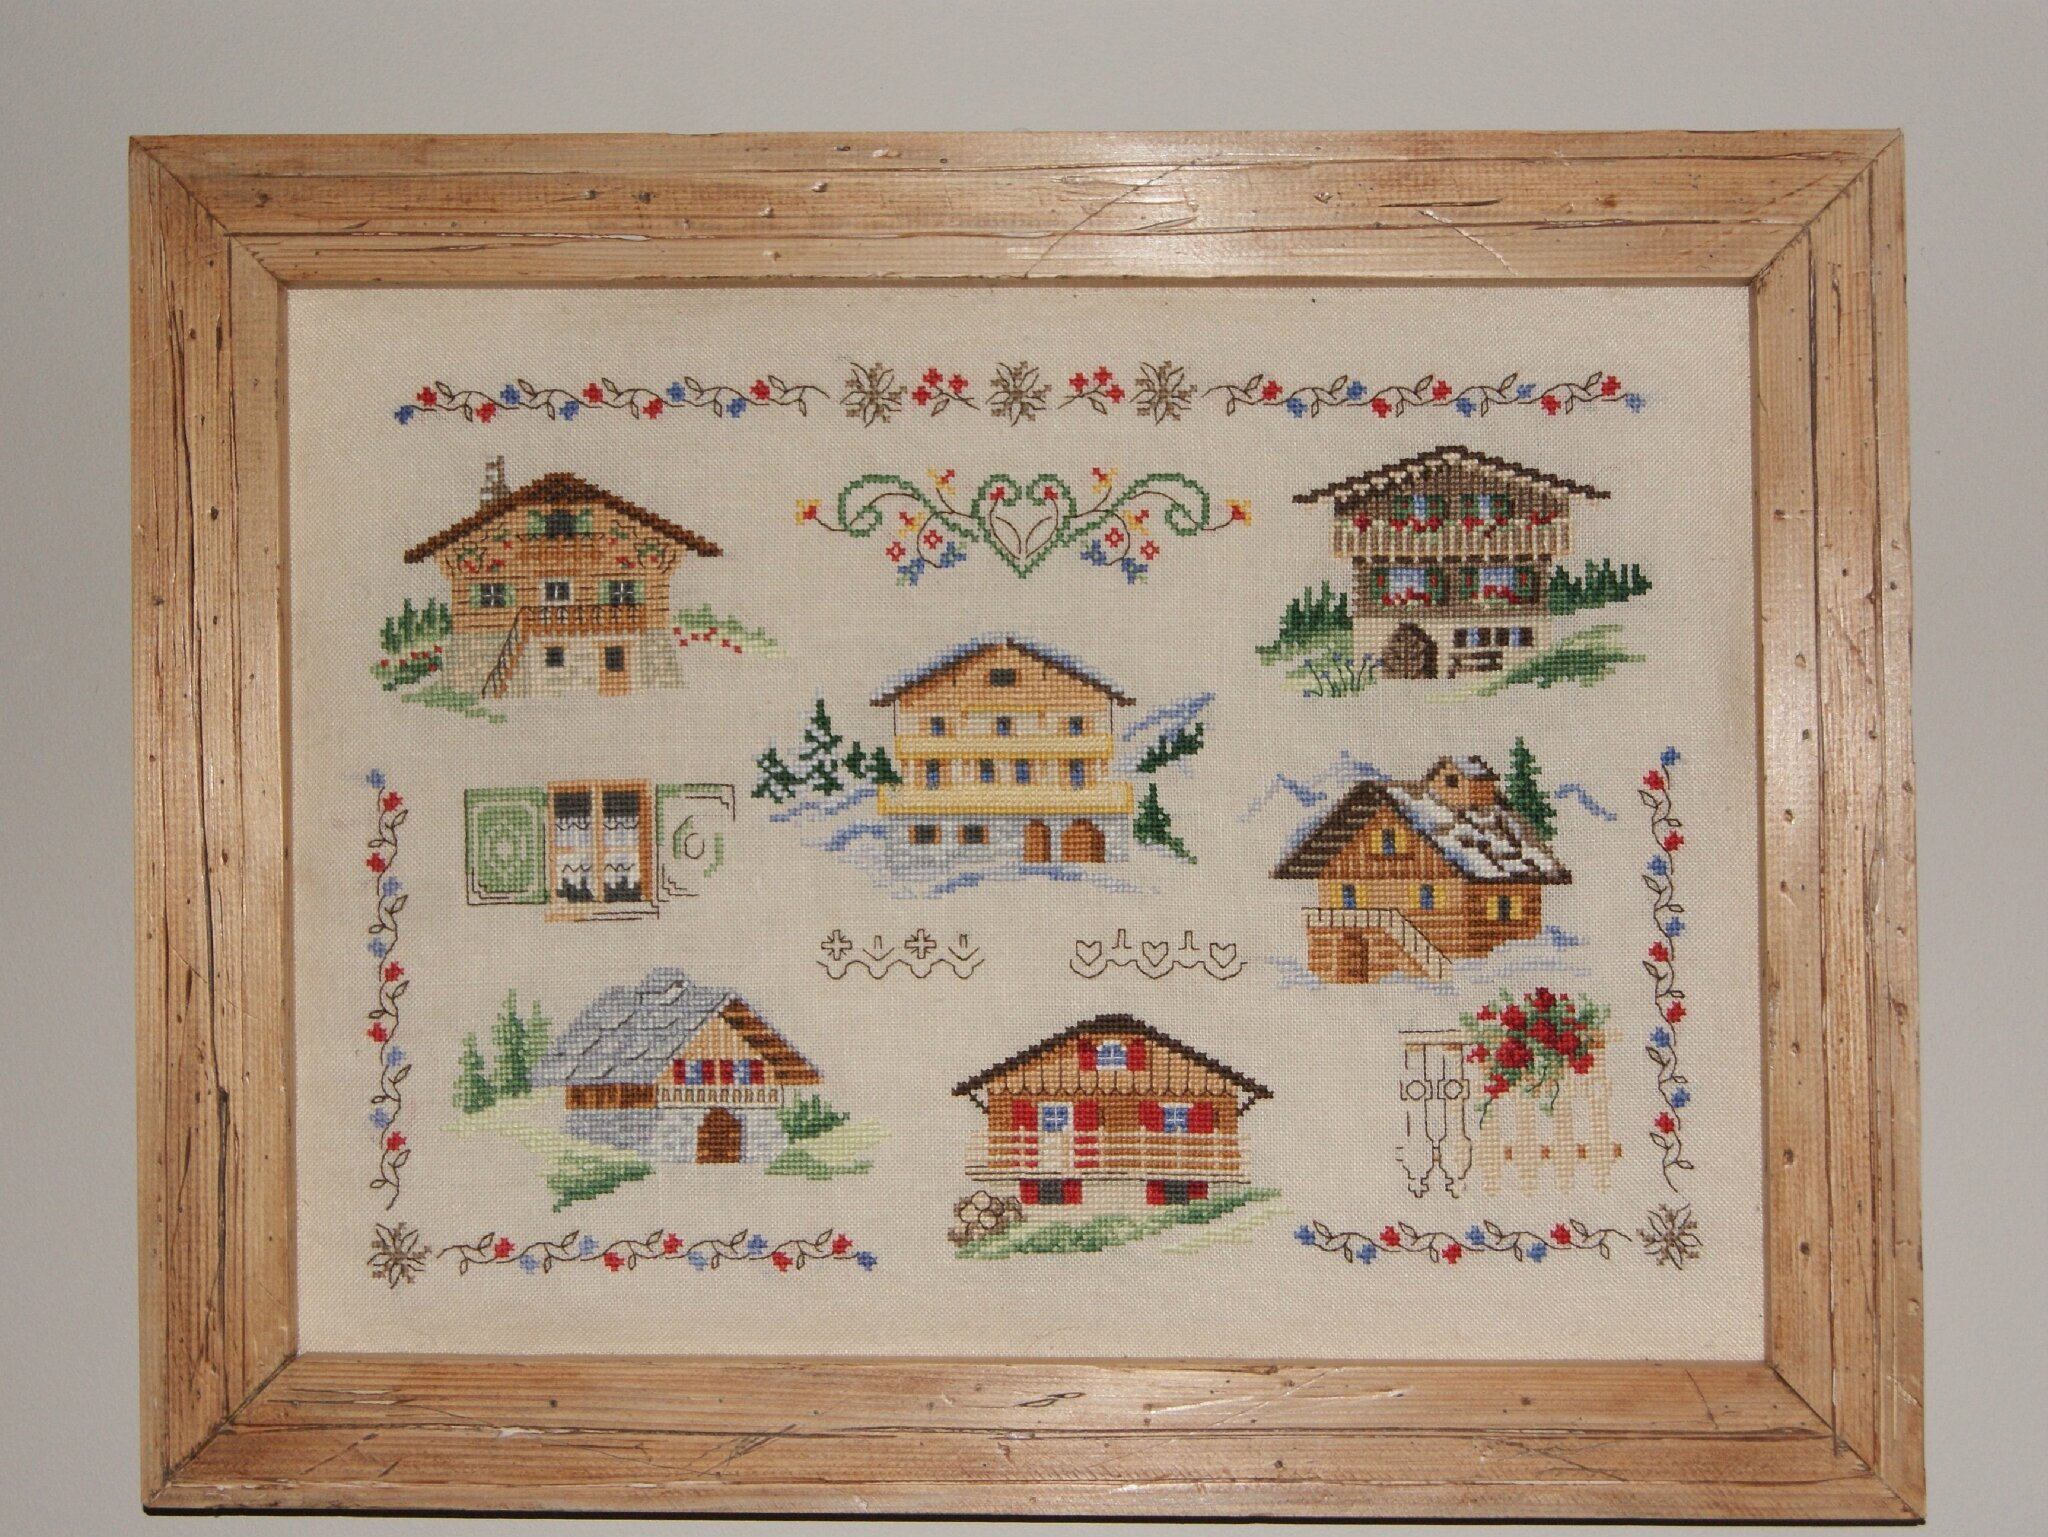 broderie-chalets-montagne